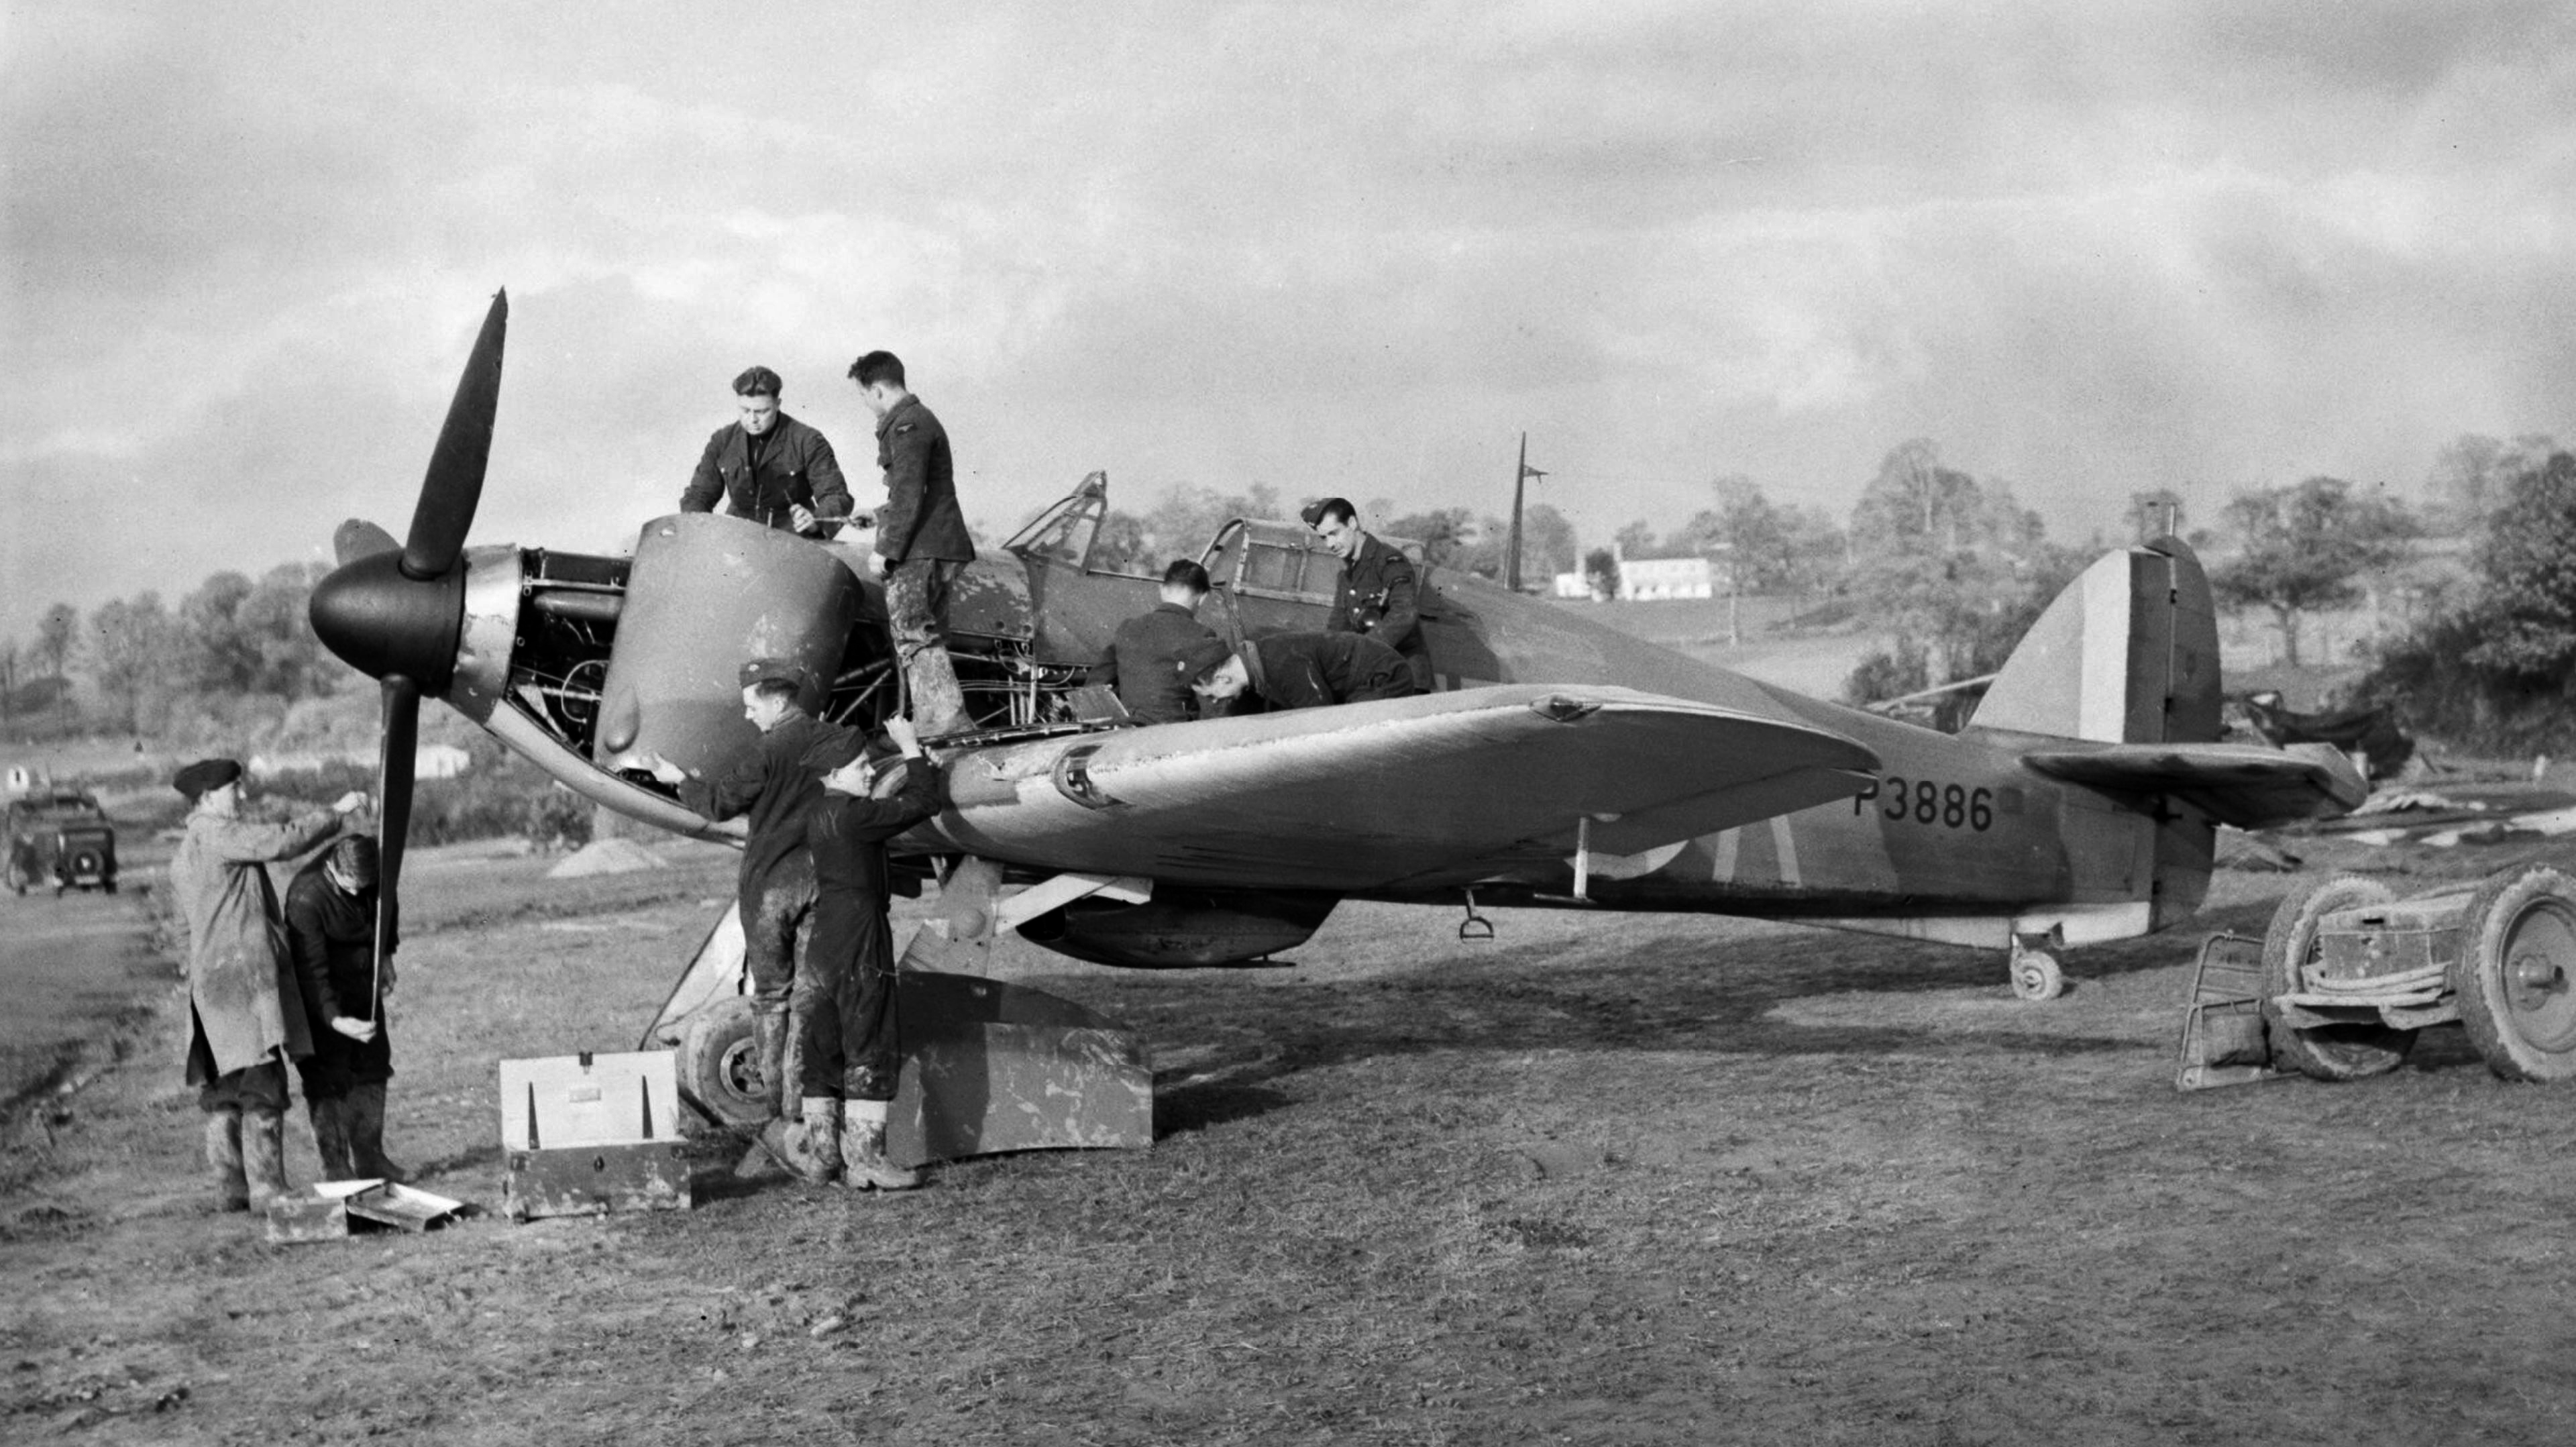 Hurricane I RAF 601Sqn UFK P3886 previously flown by HJ Riddle being repaired 1940 IWM C1638a